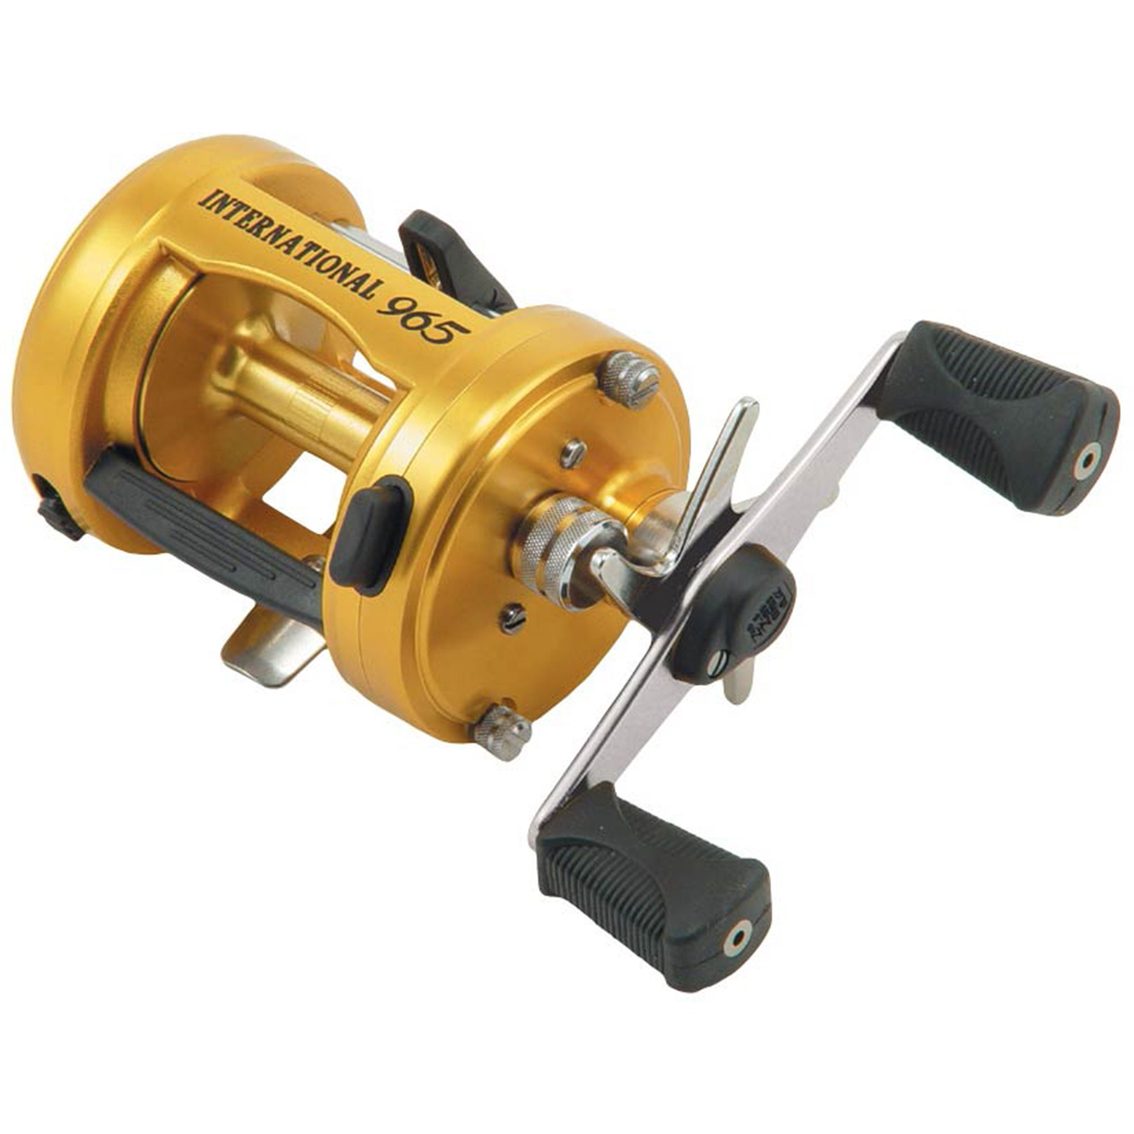 Freshwater Fishing Rods And Reels Freshwater Rods Reels · 0000